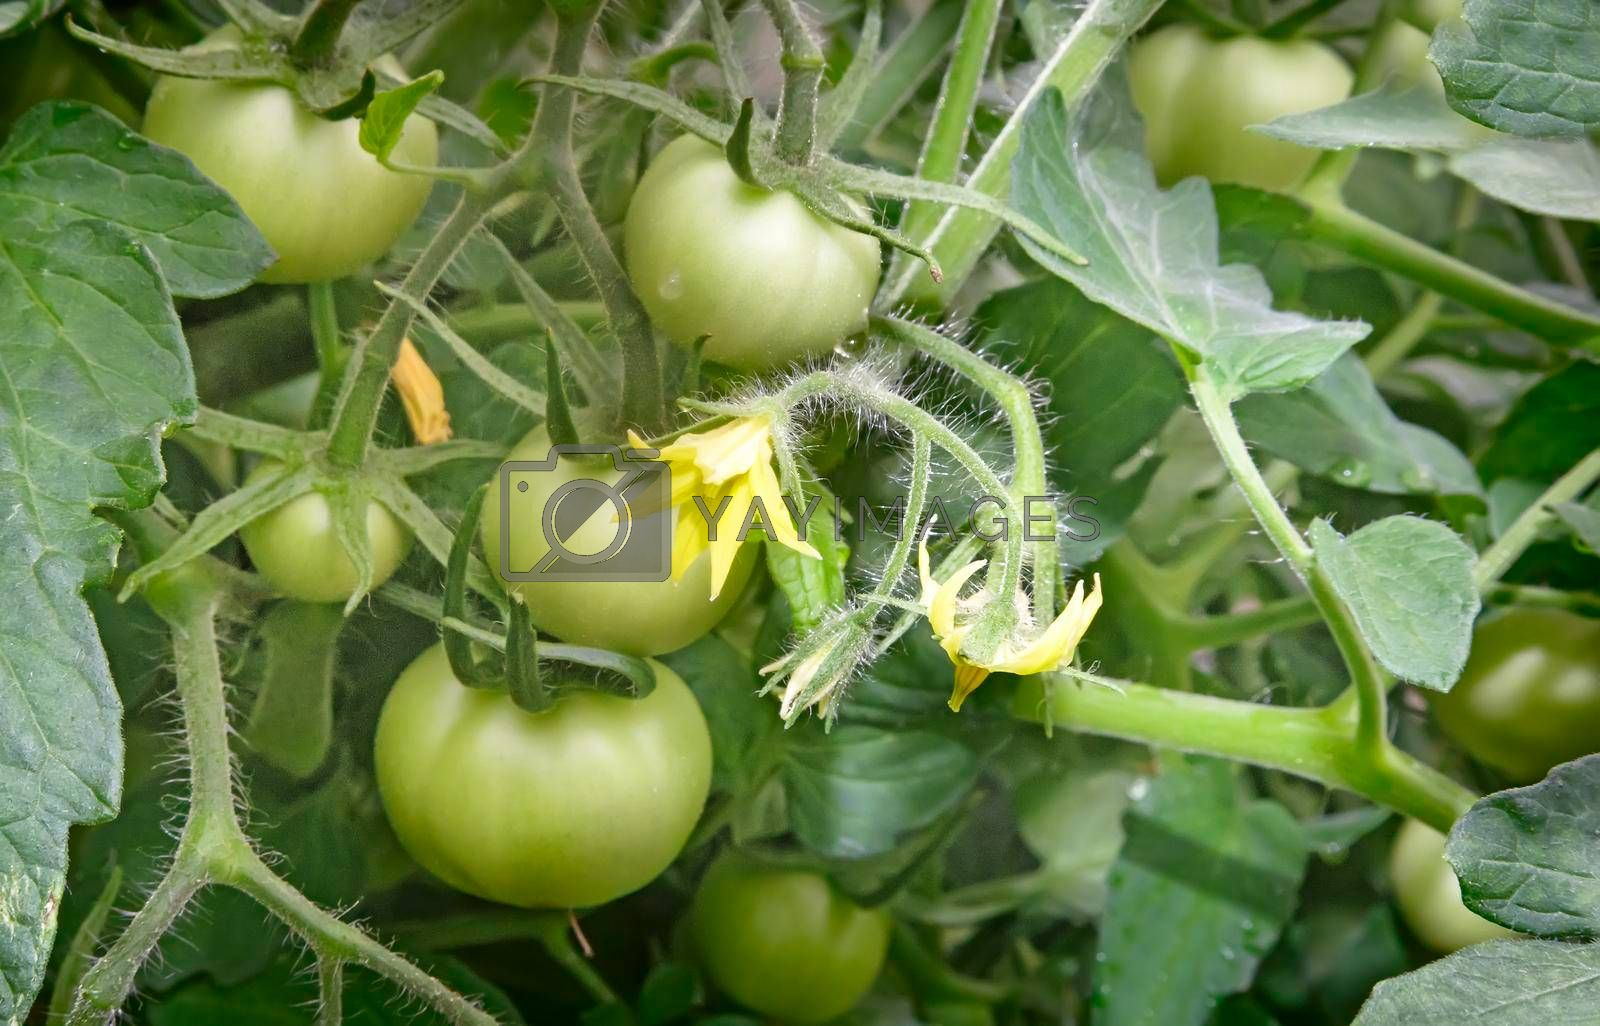 In the greenhouse on the branches of a tomato plant Matures a lot of green tomatoes.